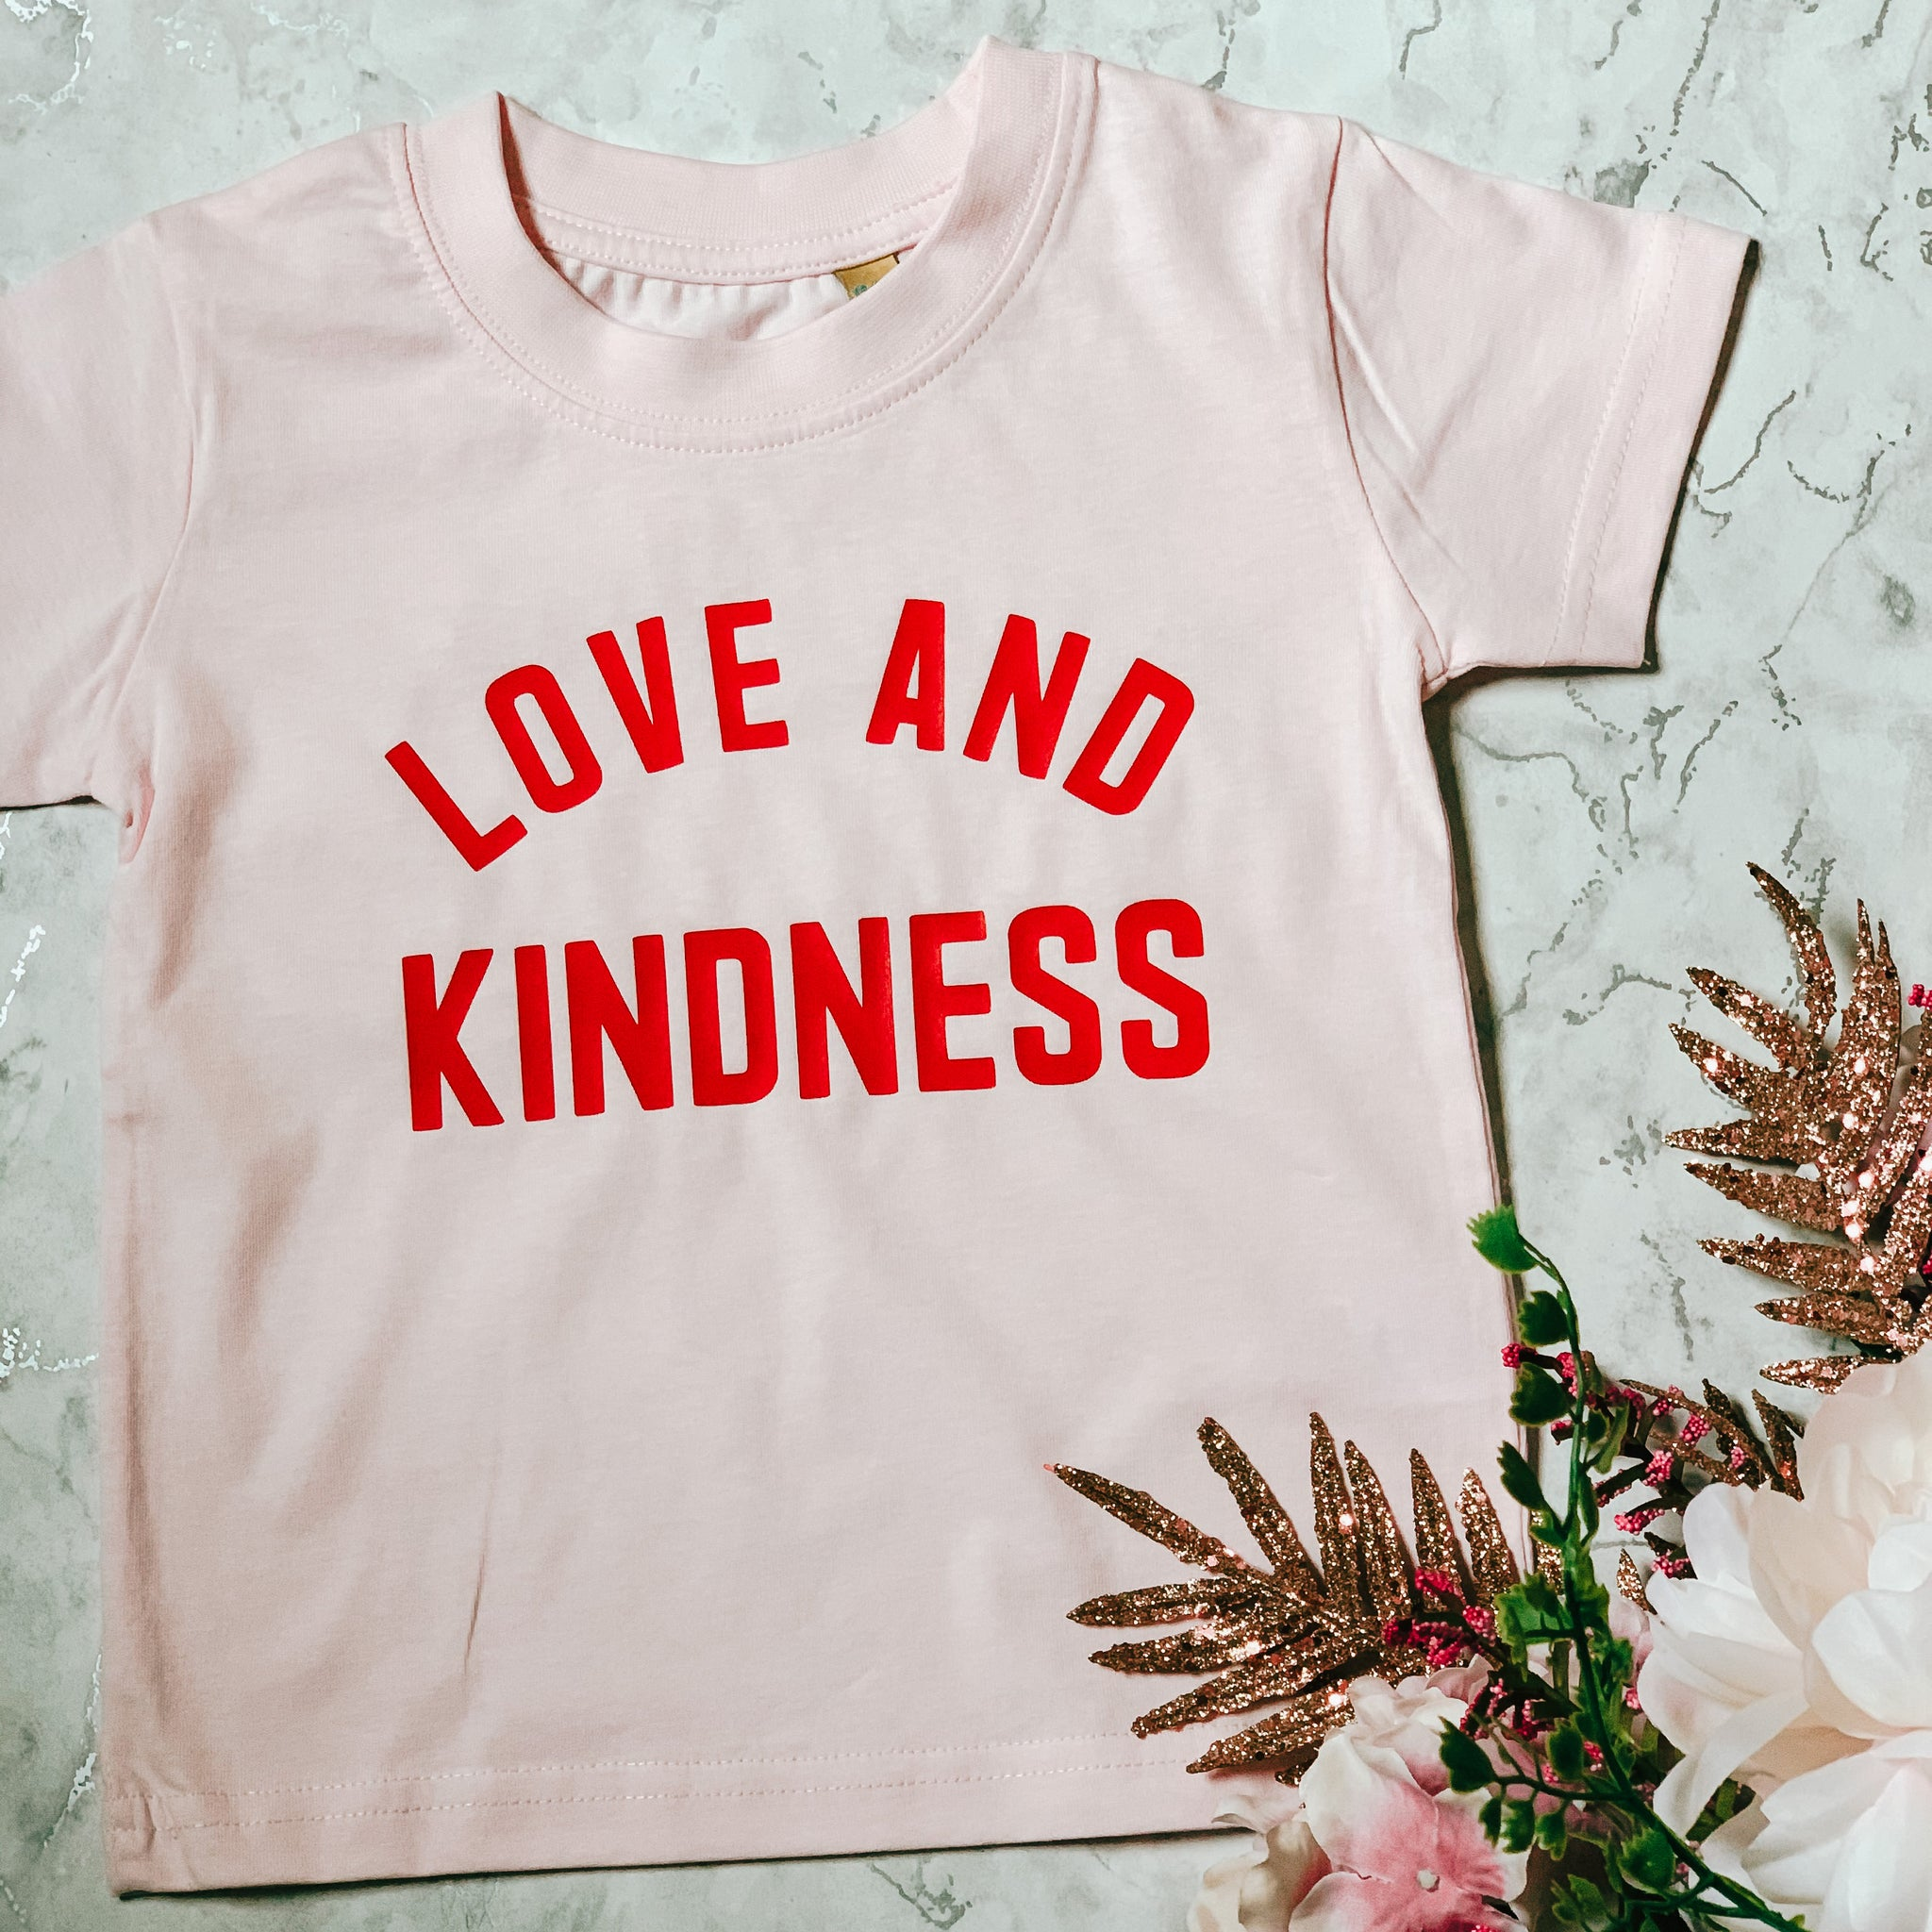 Kids Love And Kindness T-Shirt